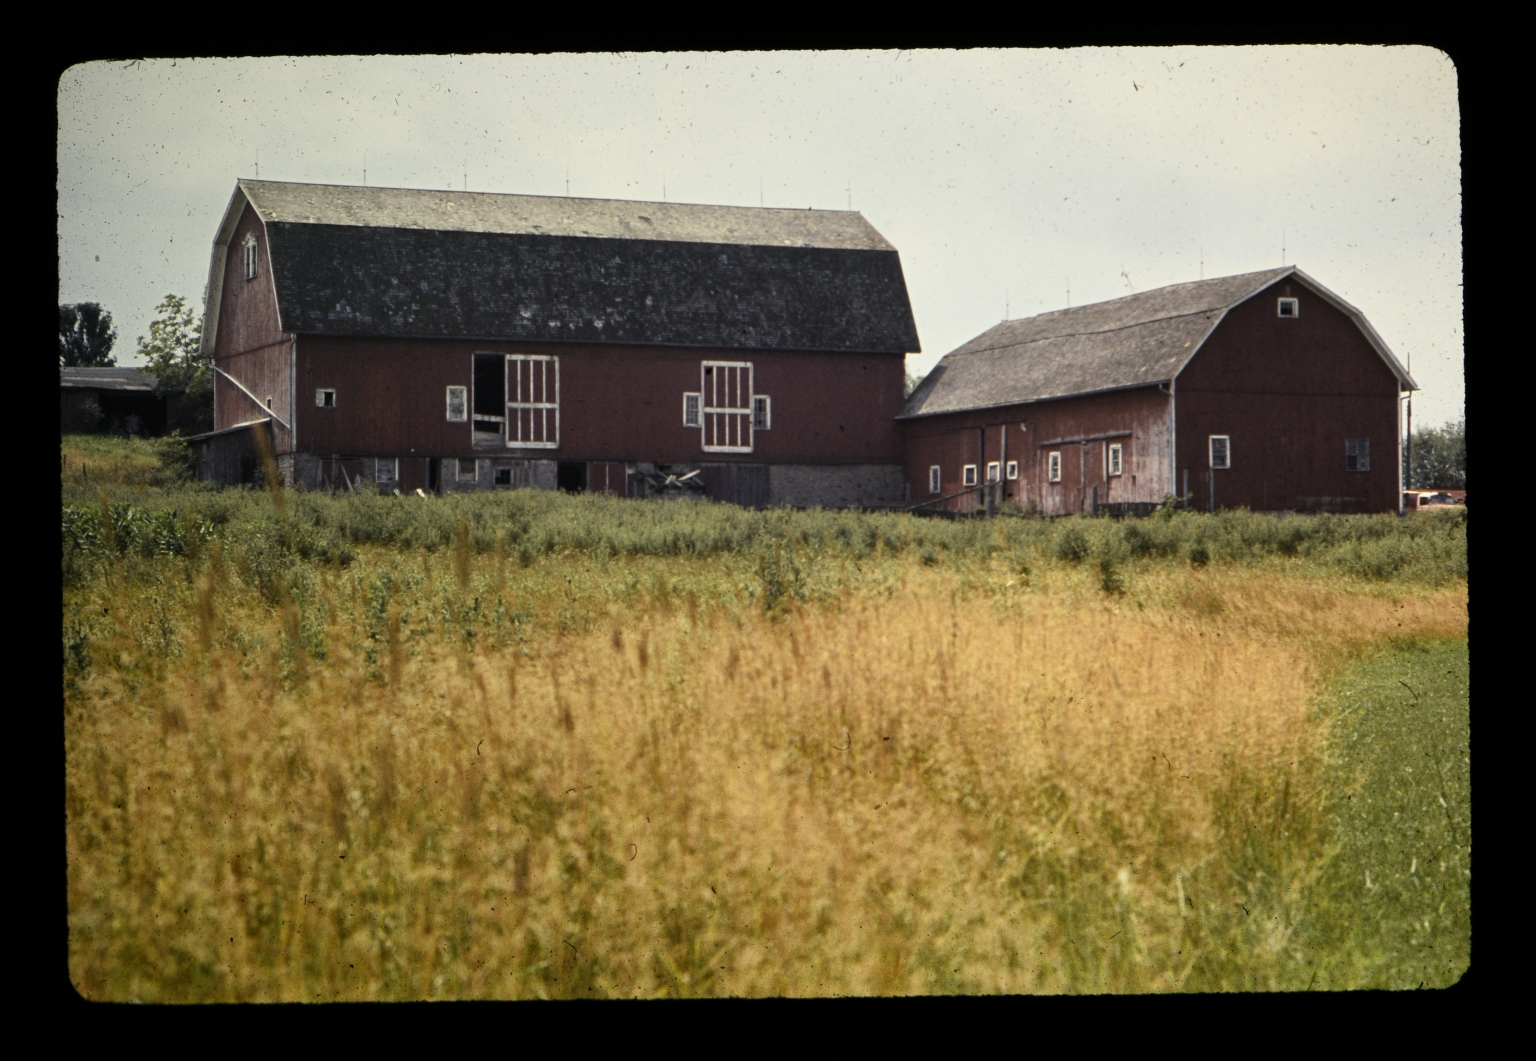 Original red barn